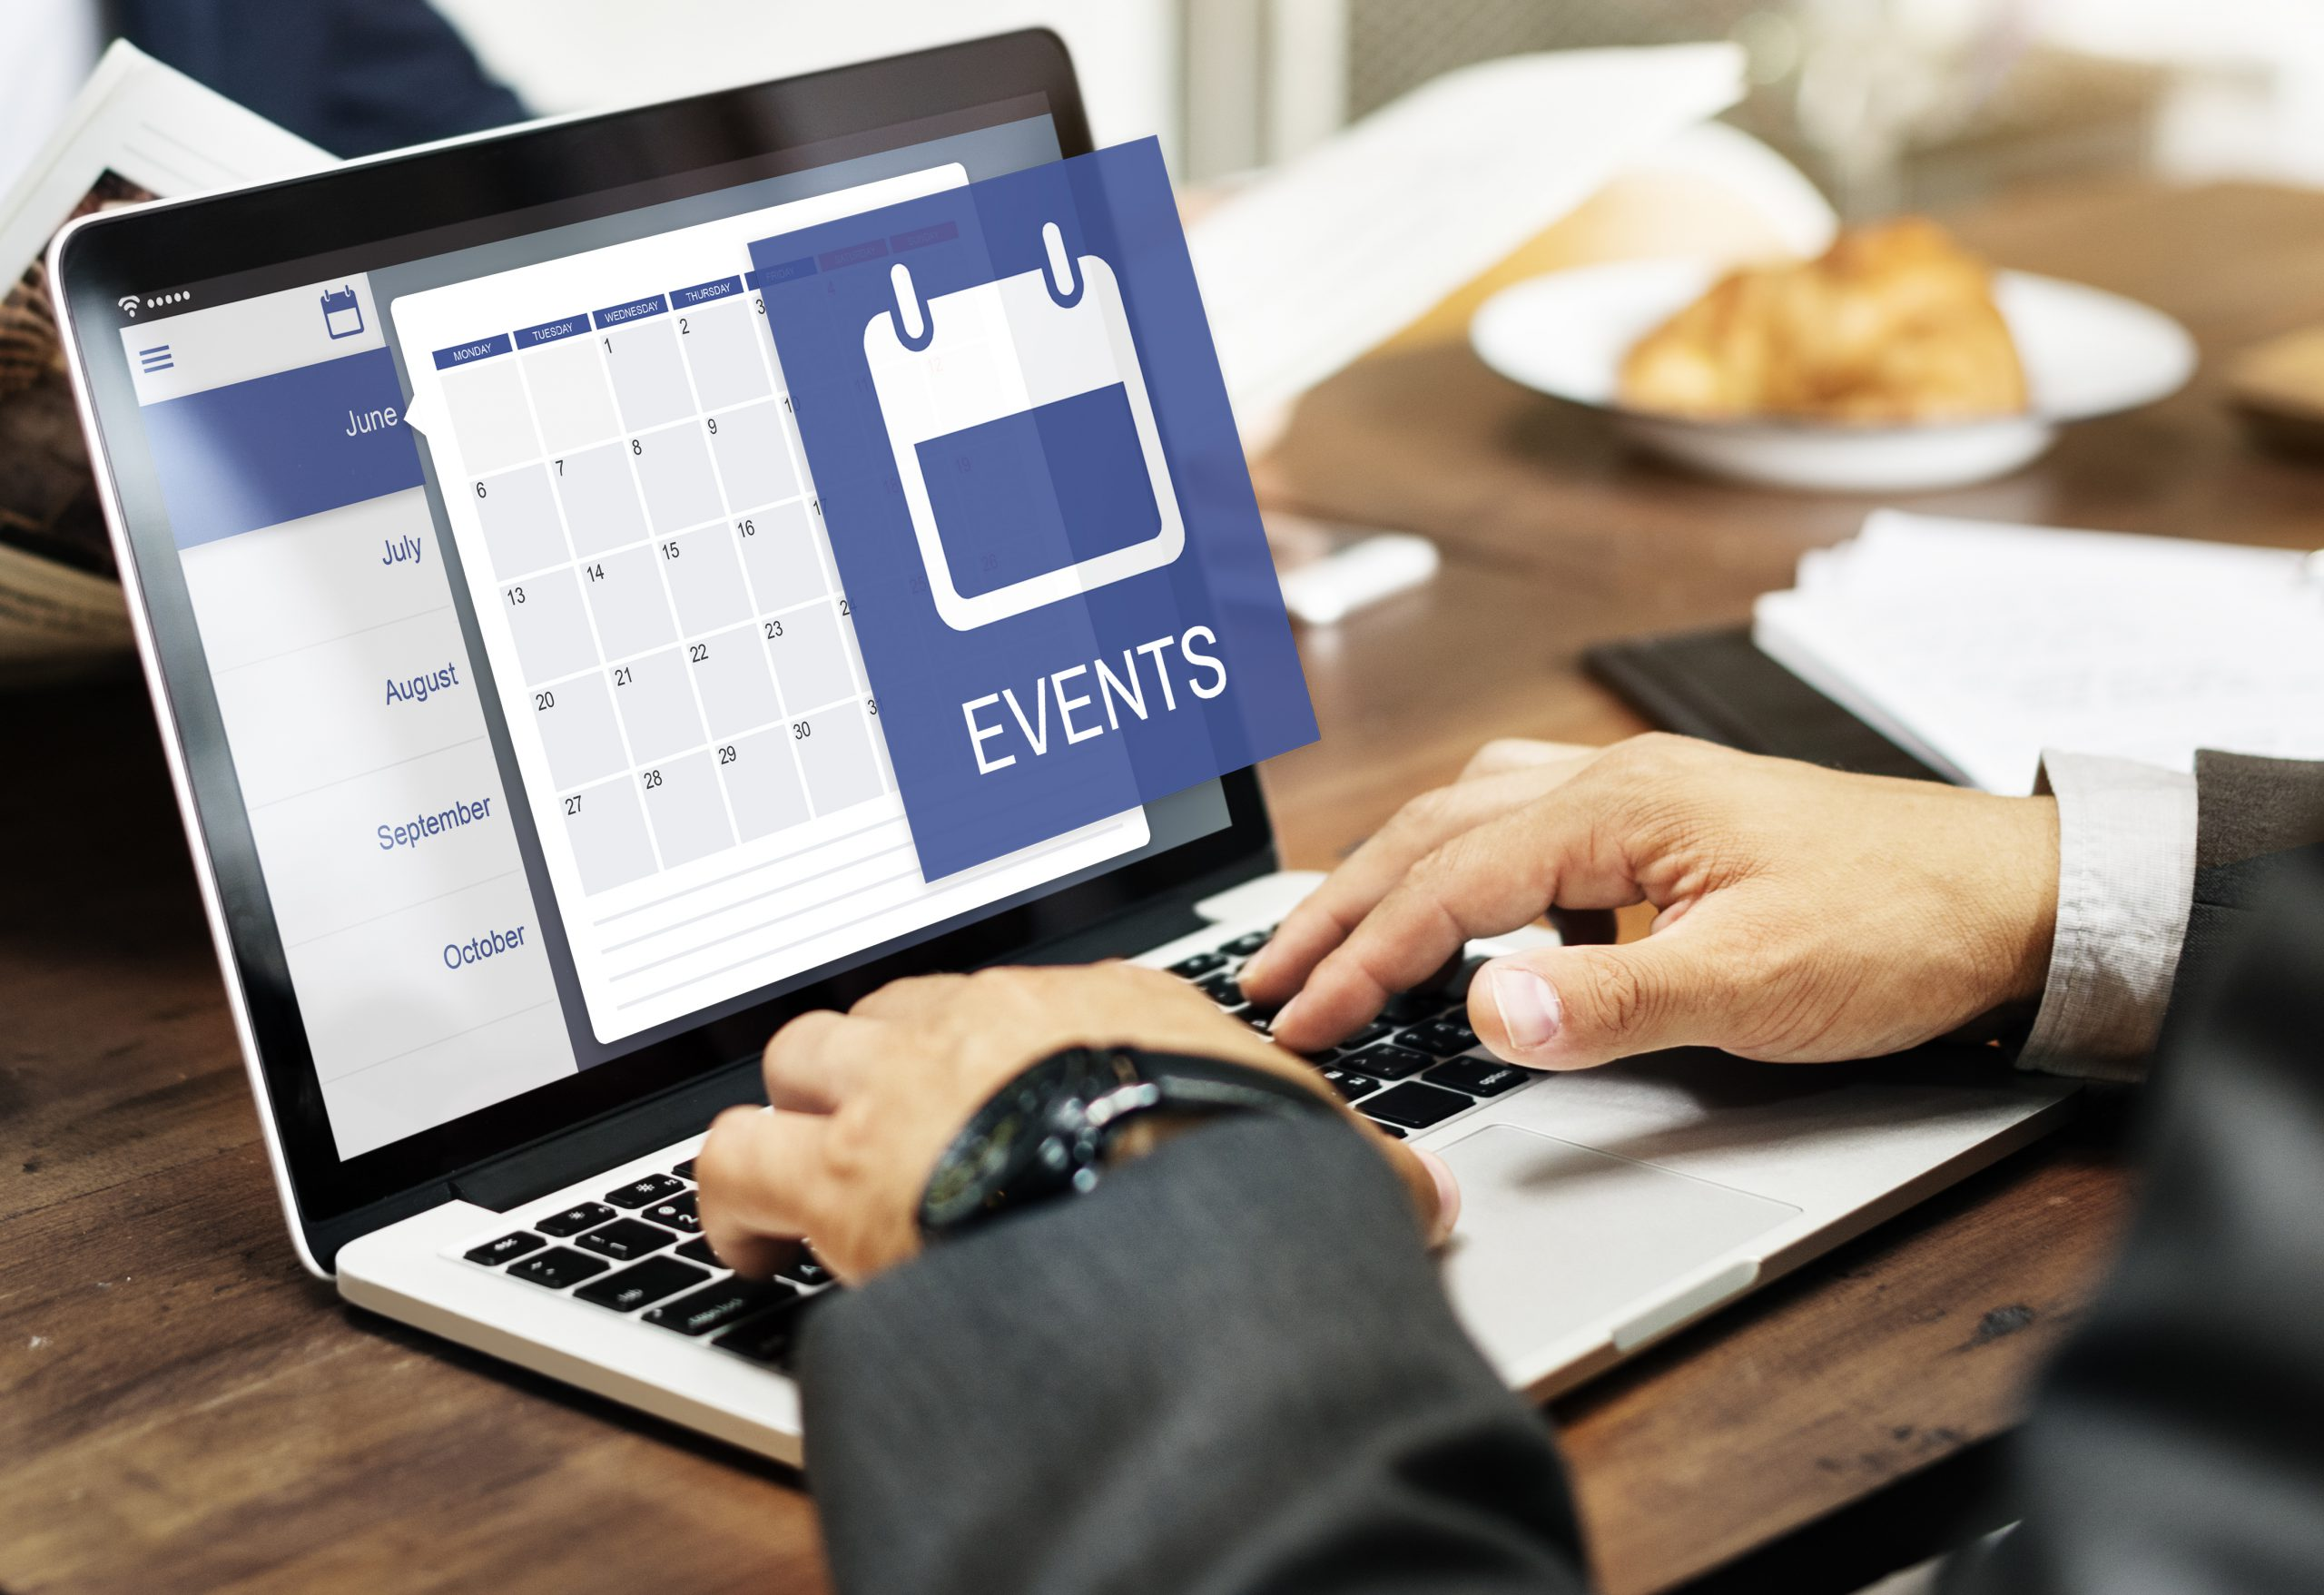 Document Collaboration Tools For Effective Remote One on Ones